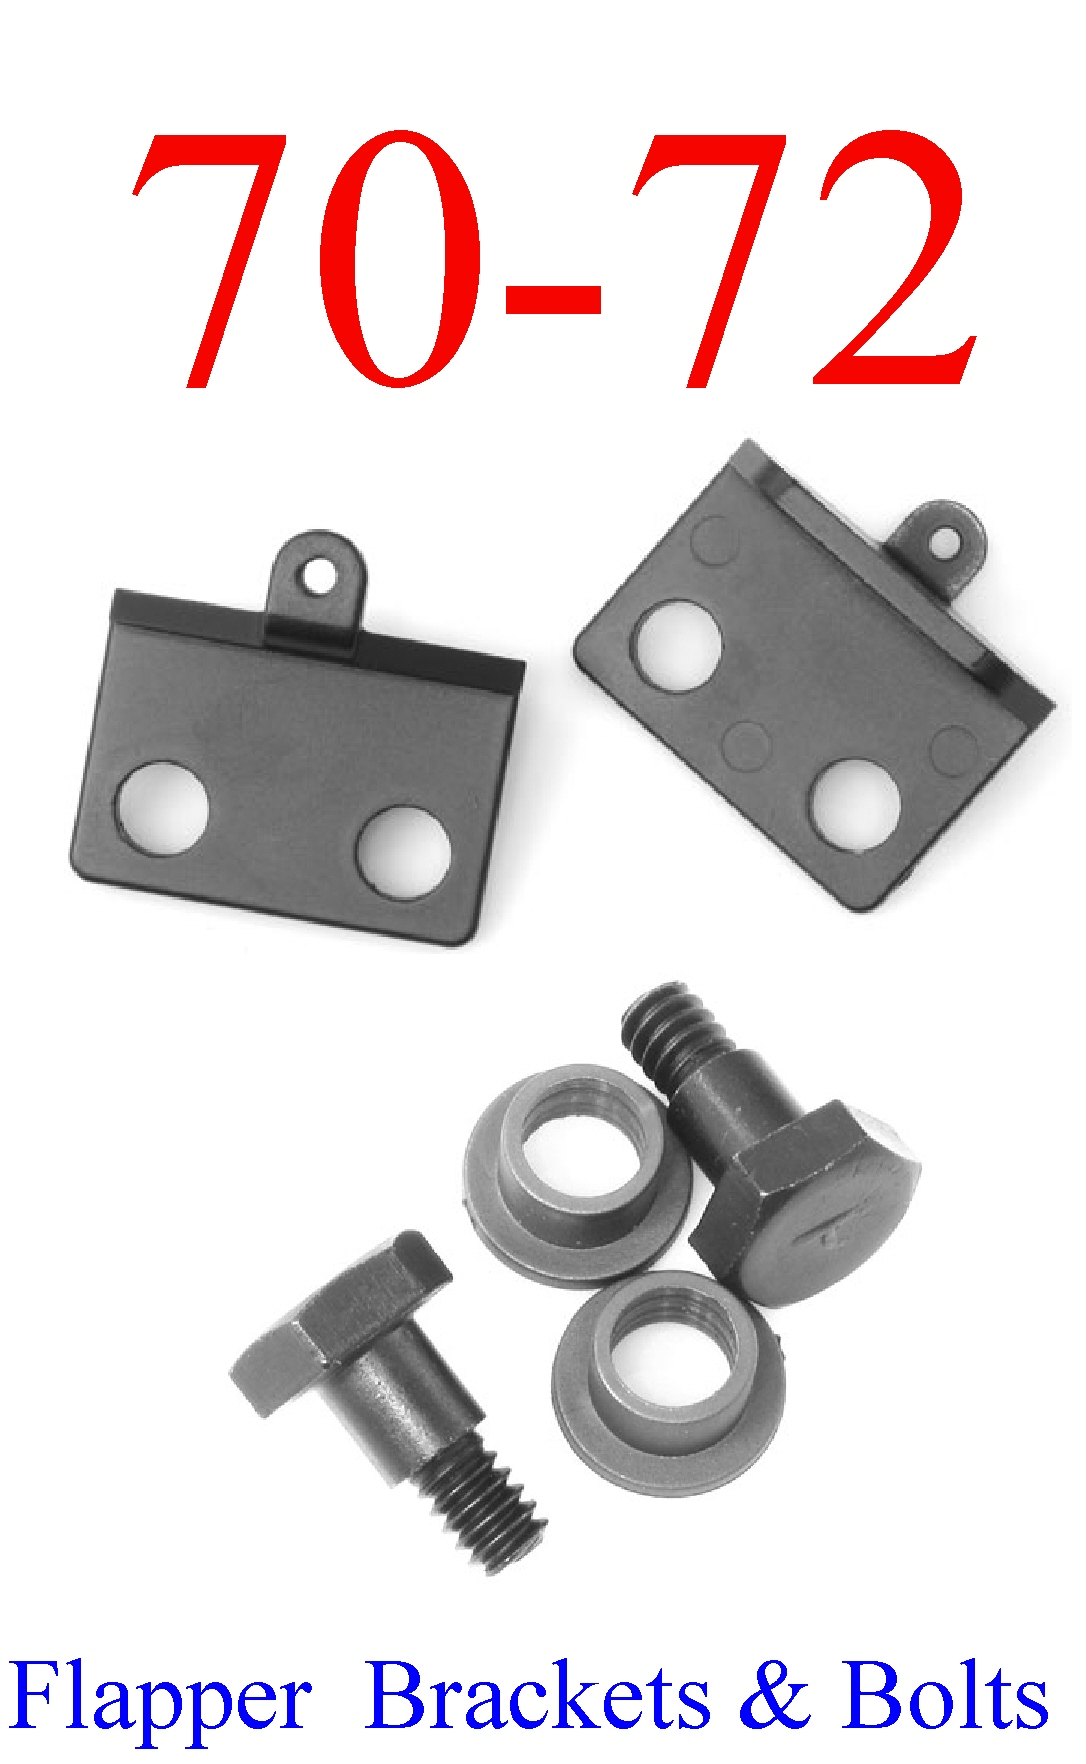 70-72 Chevy Chevelle SS 6Pc Flapper Door, Bolt & Bushing Kit